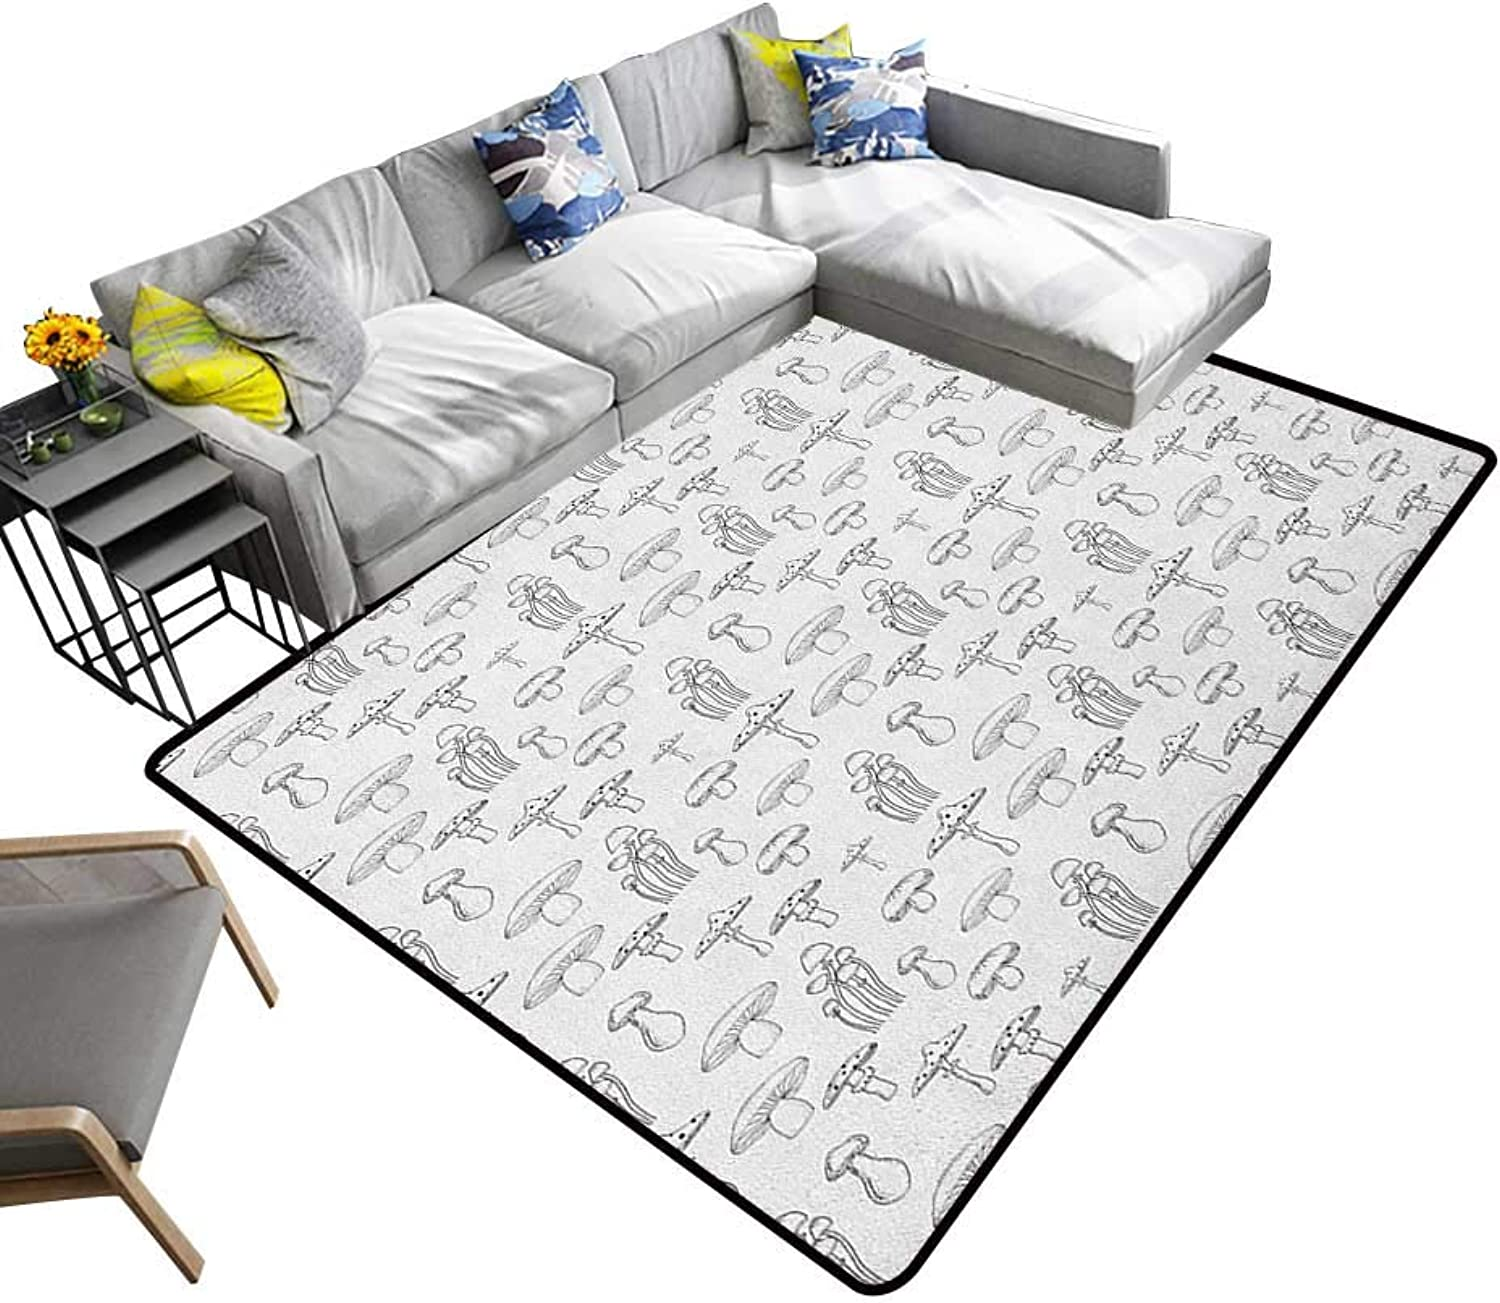 Mushroom Non-Slip Floor mat Collection of Different Mushrooms Doodle Style Monochrome Display Organic Garden 70 x82 ,Can be Used for Floor Decoration